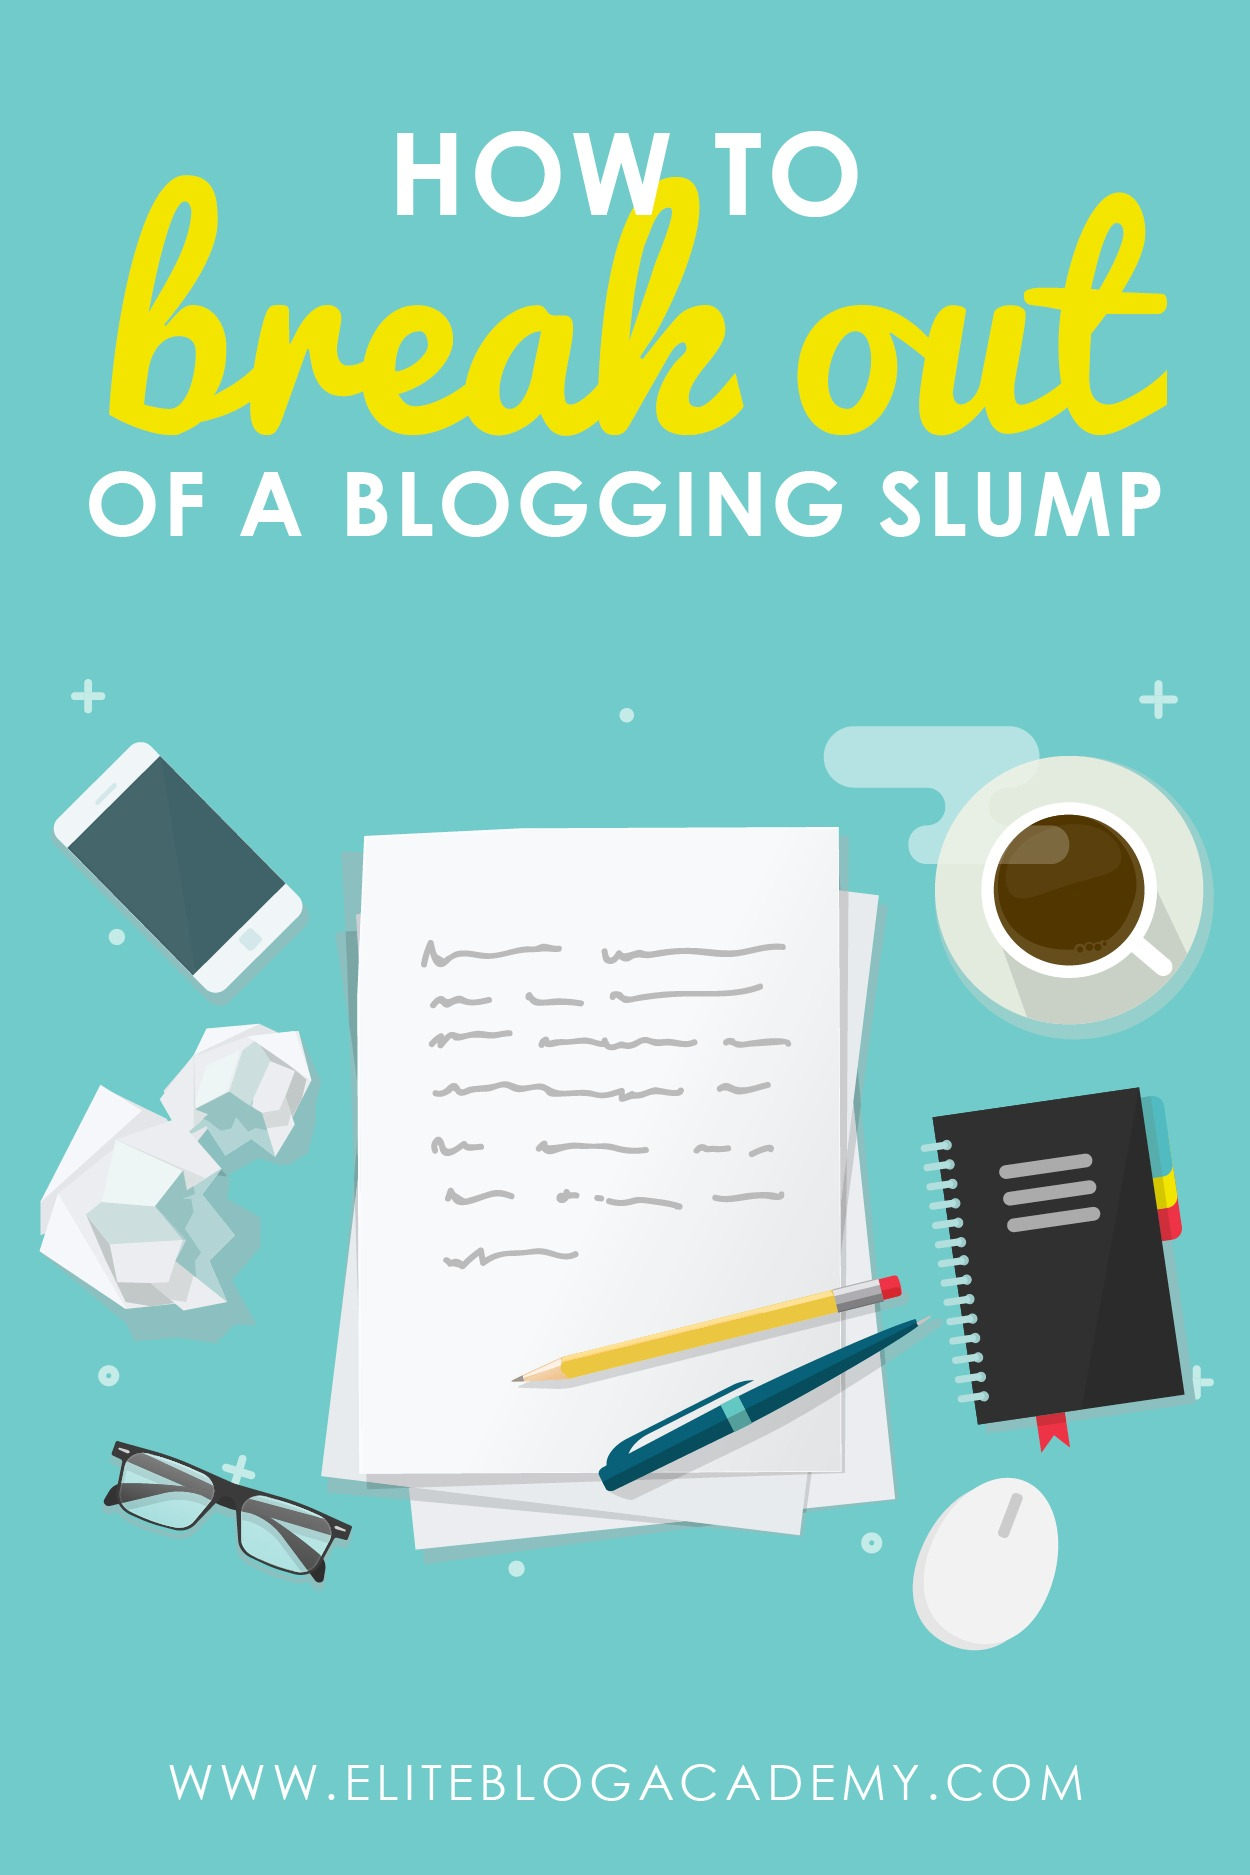 Feeling unmotivated and stuck? Here are 5 ways to break out of a blogging slump! #bloggingmotivation #writersblock #eliteblogacademy #blogging